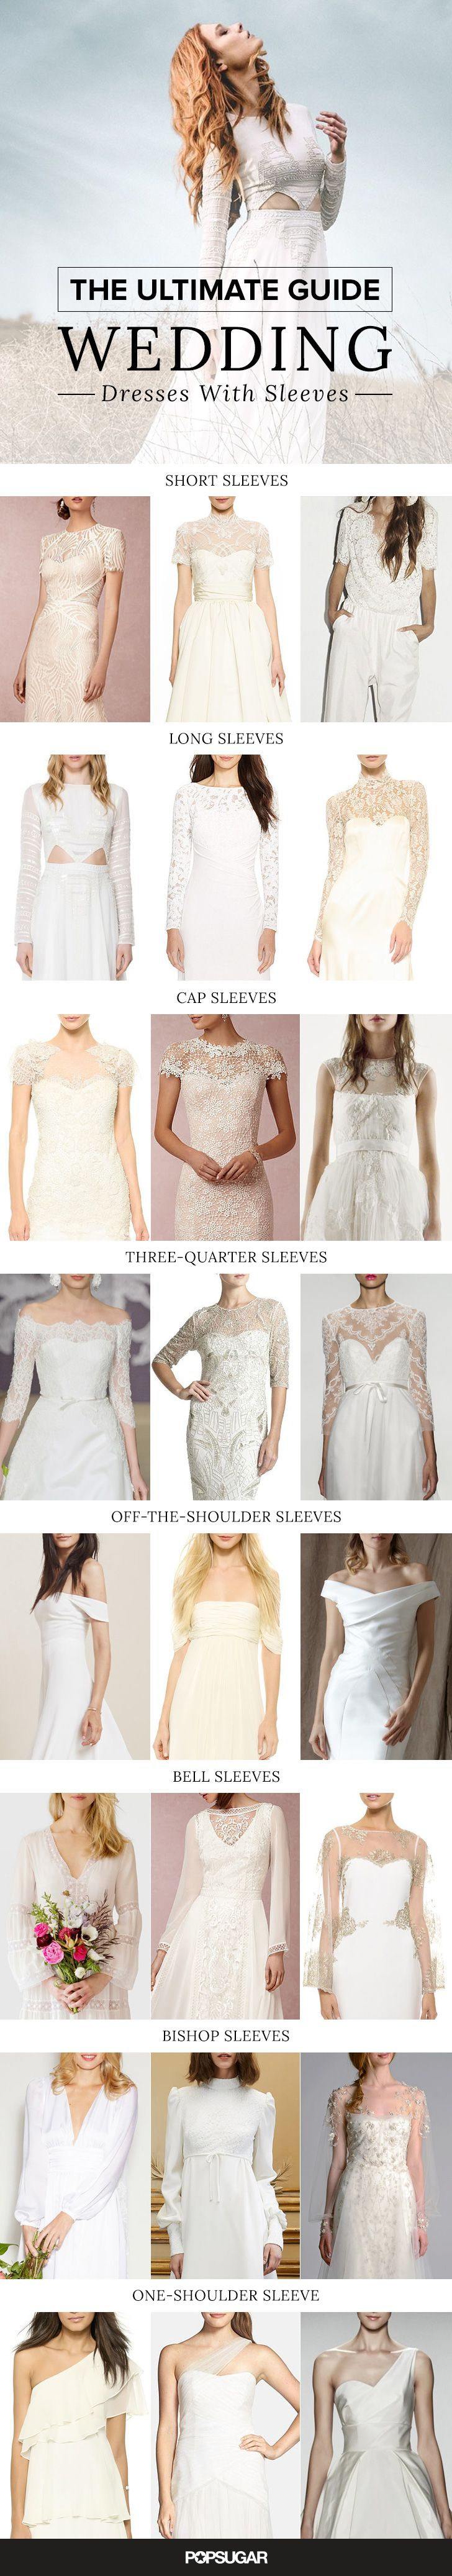 If it's time for you to start thinking about your wedding dress, why not consider one with sleeves?